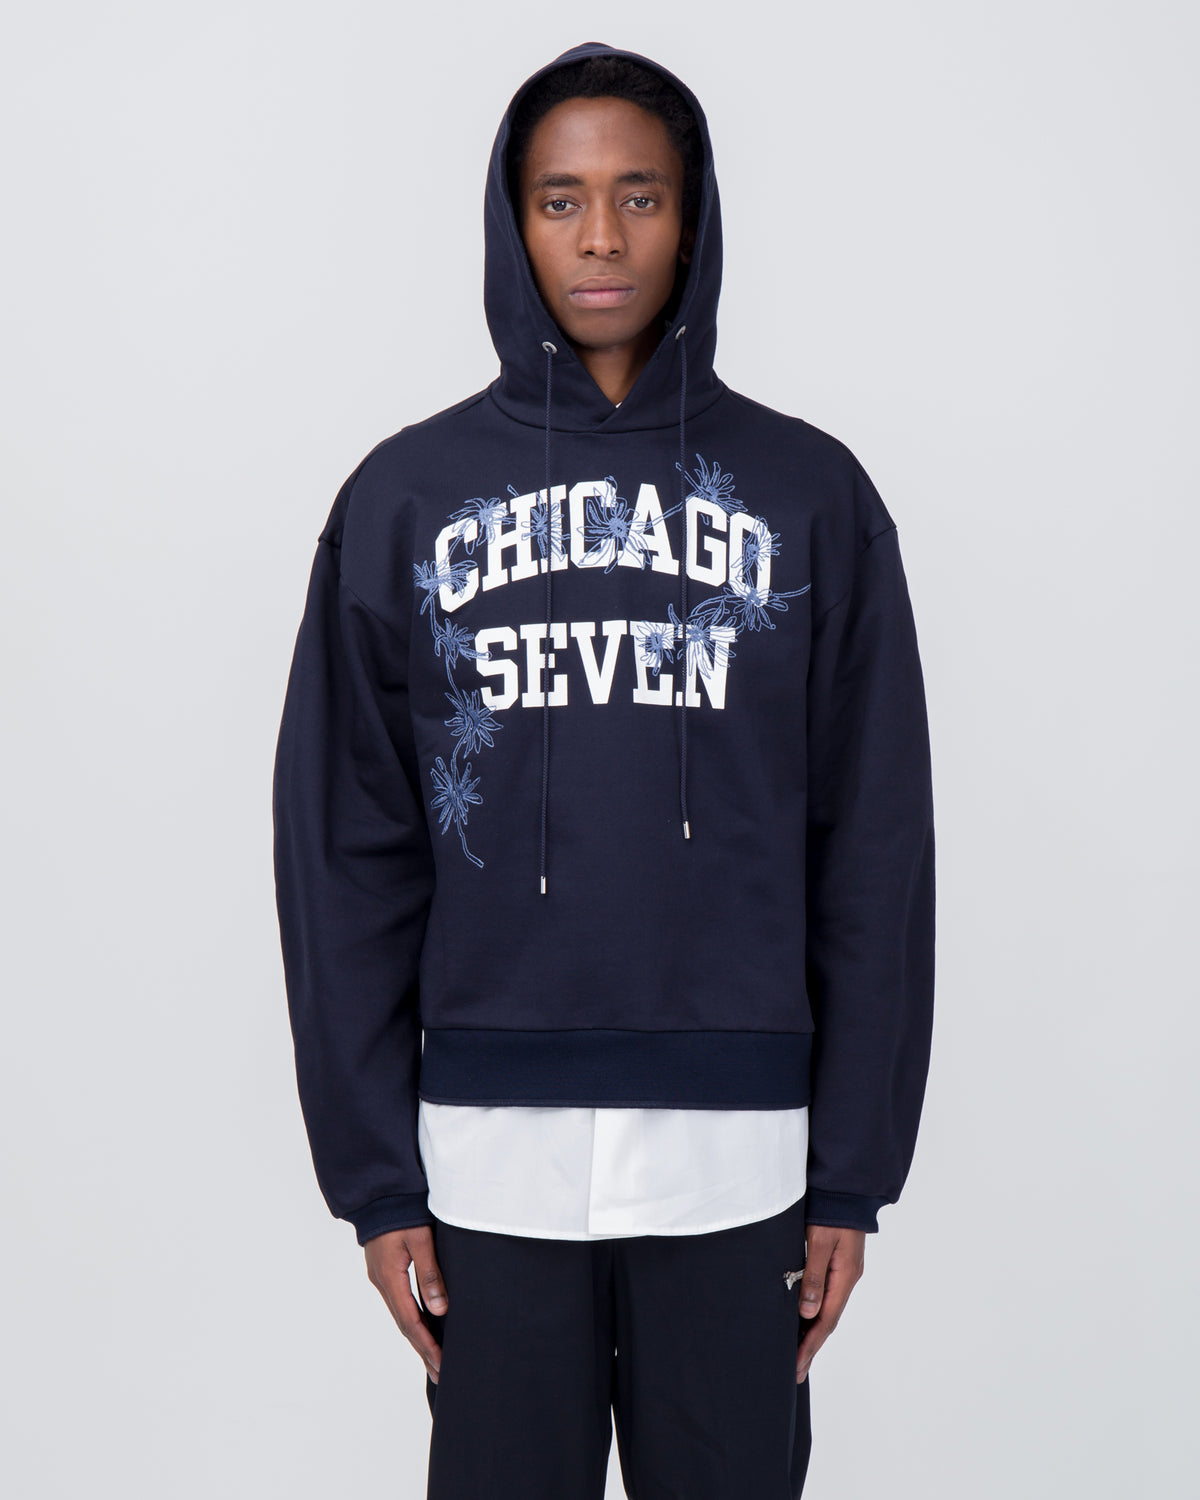 Chicago Seven Hoodie in Midnight Blue